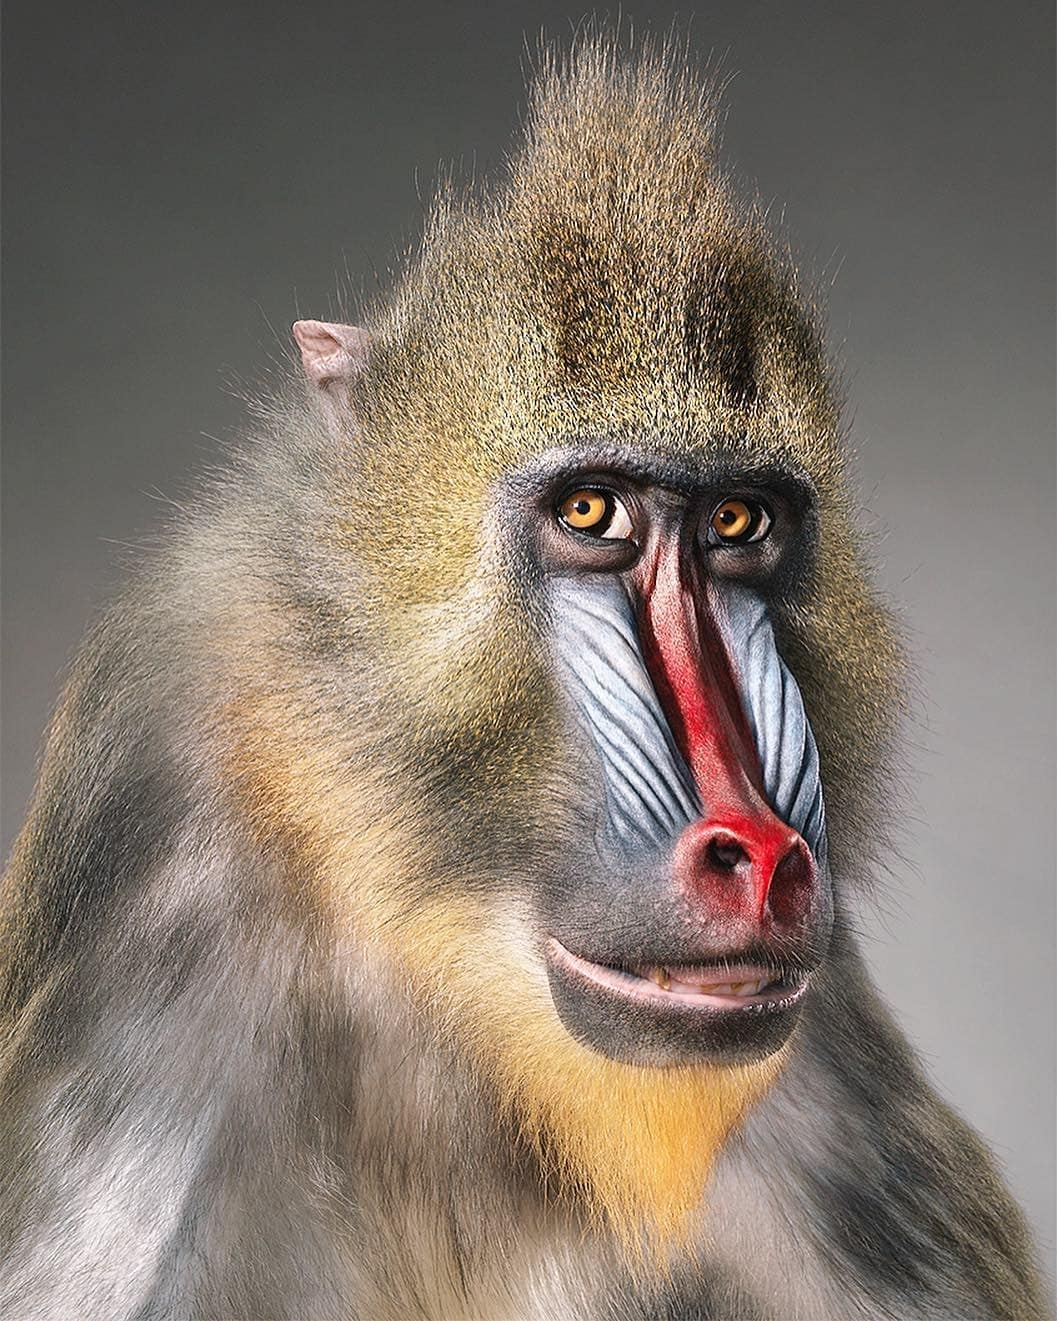 """""""Mandrills form the largest social groups of any non-human primate, with a troop of 1,300 once recorded in the forests of Gabon. With their striking faces and eyes, they have evolved some of the most spectacular colouration of any mammalian species, the intensity of which signifies their social and sexual status. Sadly, it is not just their appearance that is appealing; mandrill meat is considered a delicacy in West Africa, and it is part of a growing trade, with tons of bush meat being smuggled into western Europe every week. Logging and farming are limiting their places of refuge, and these remarkable animals are in urgent need of stronger protections."""" Tim Flach"""